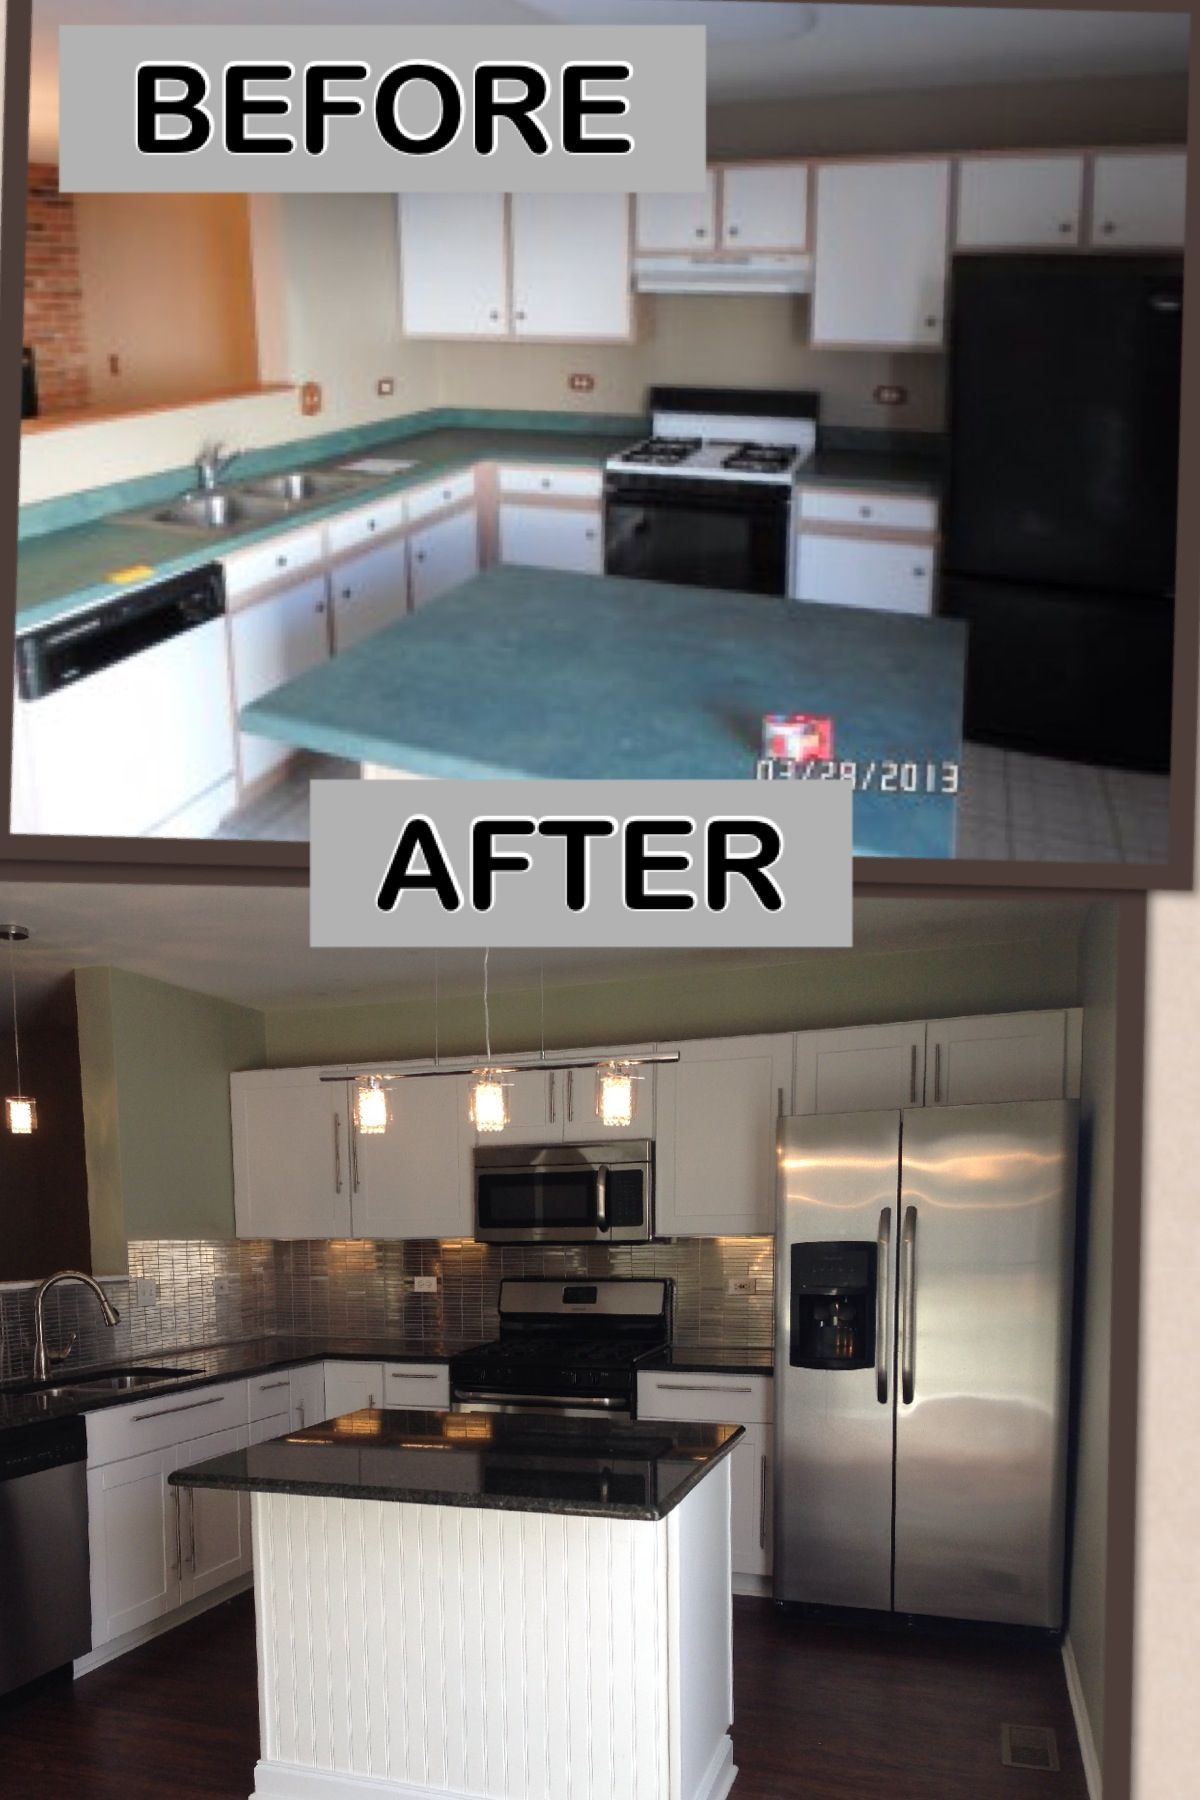 kitchen remodel on a budget everything brand new for 7000 cabinets were - Low Budget Kitchen Remodel